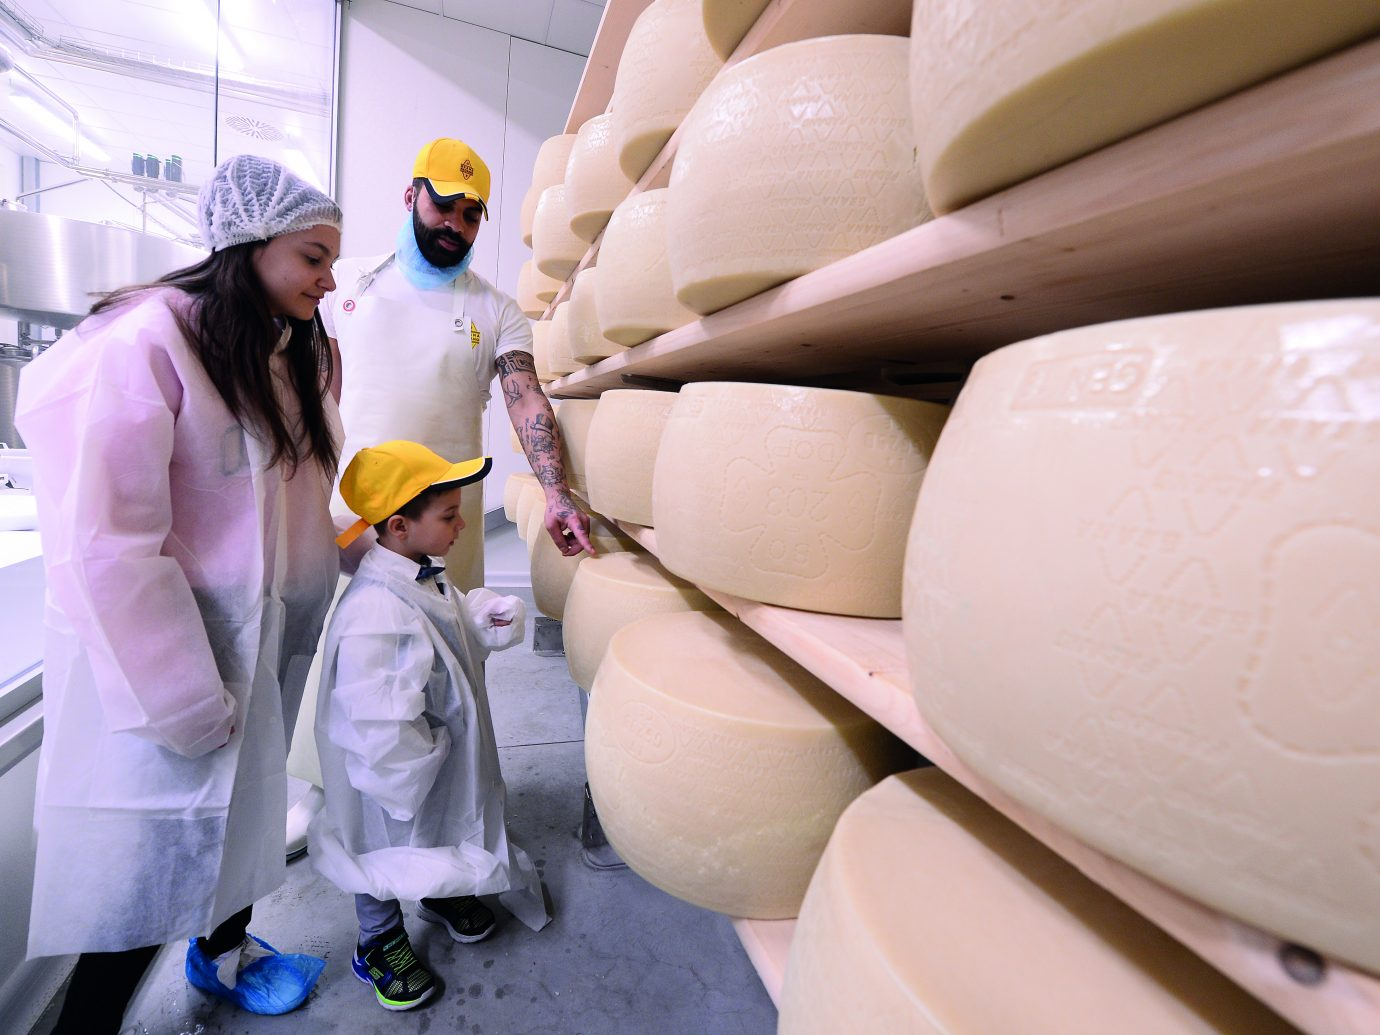 wheels of parmesan cheese at Eataly World